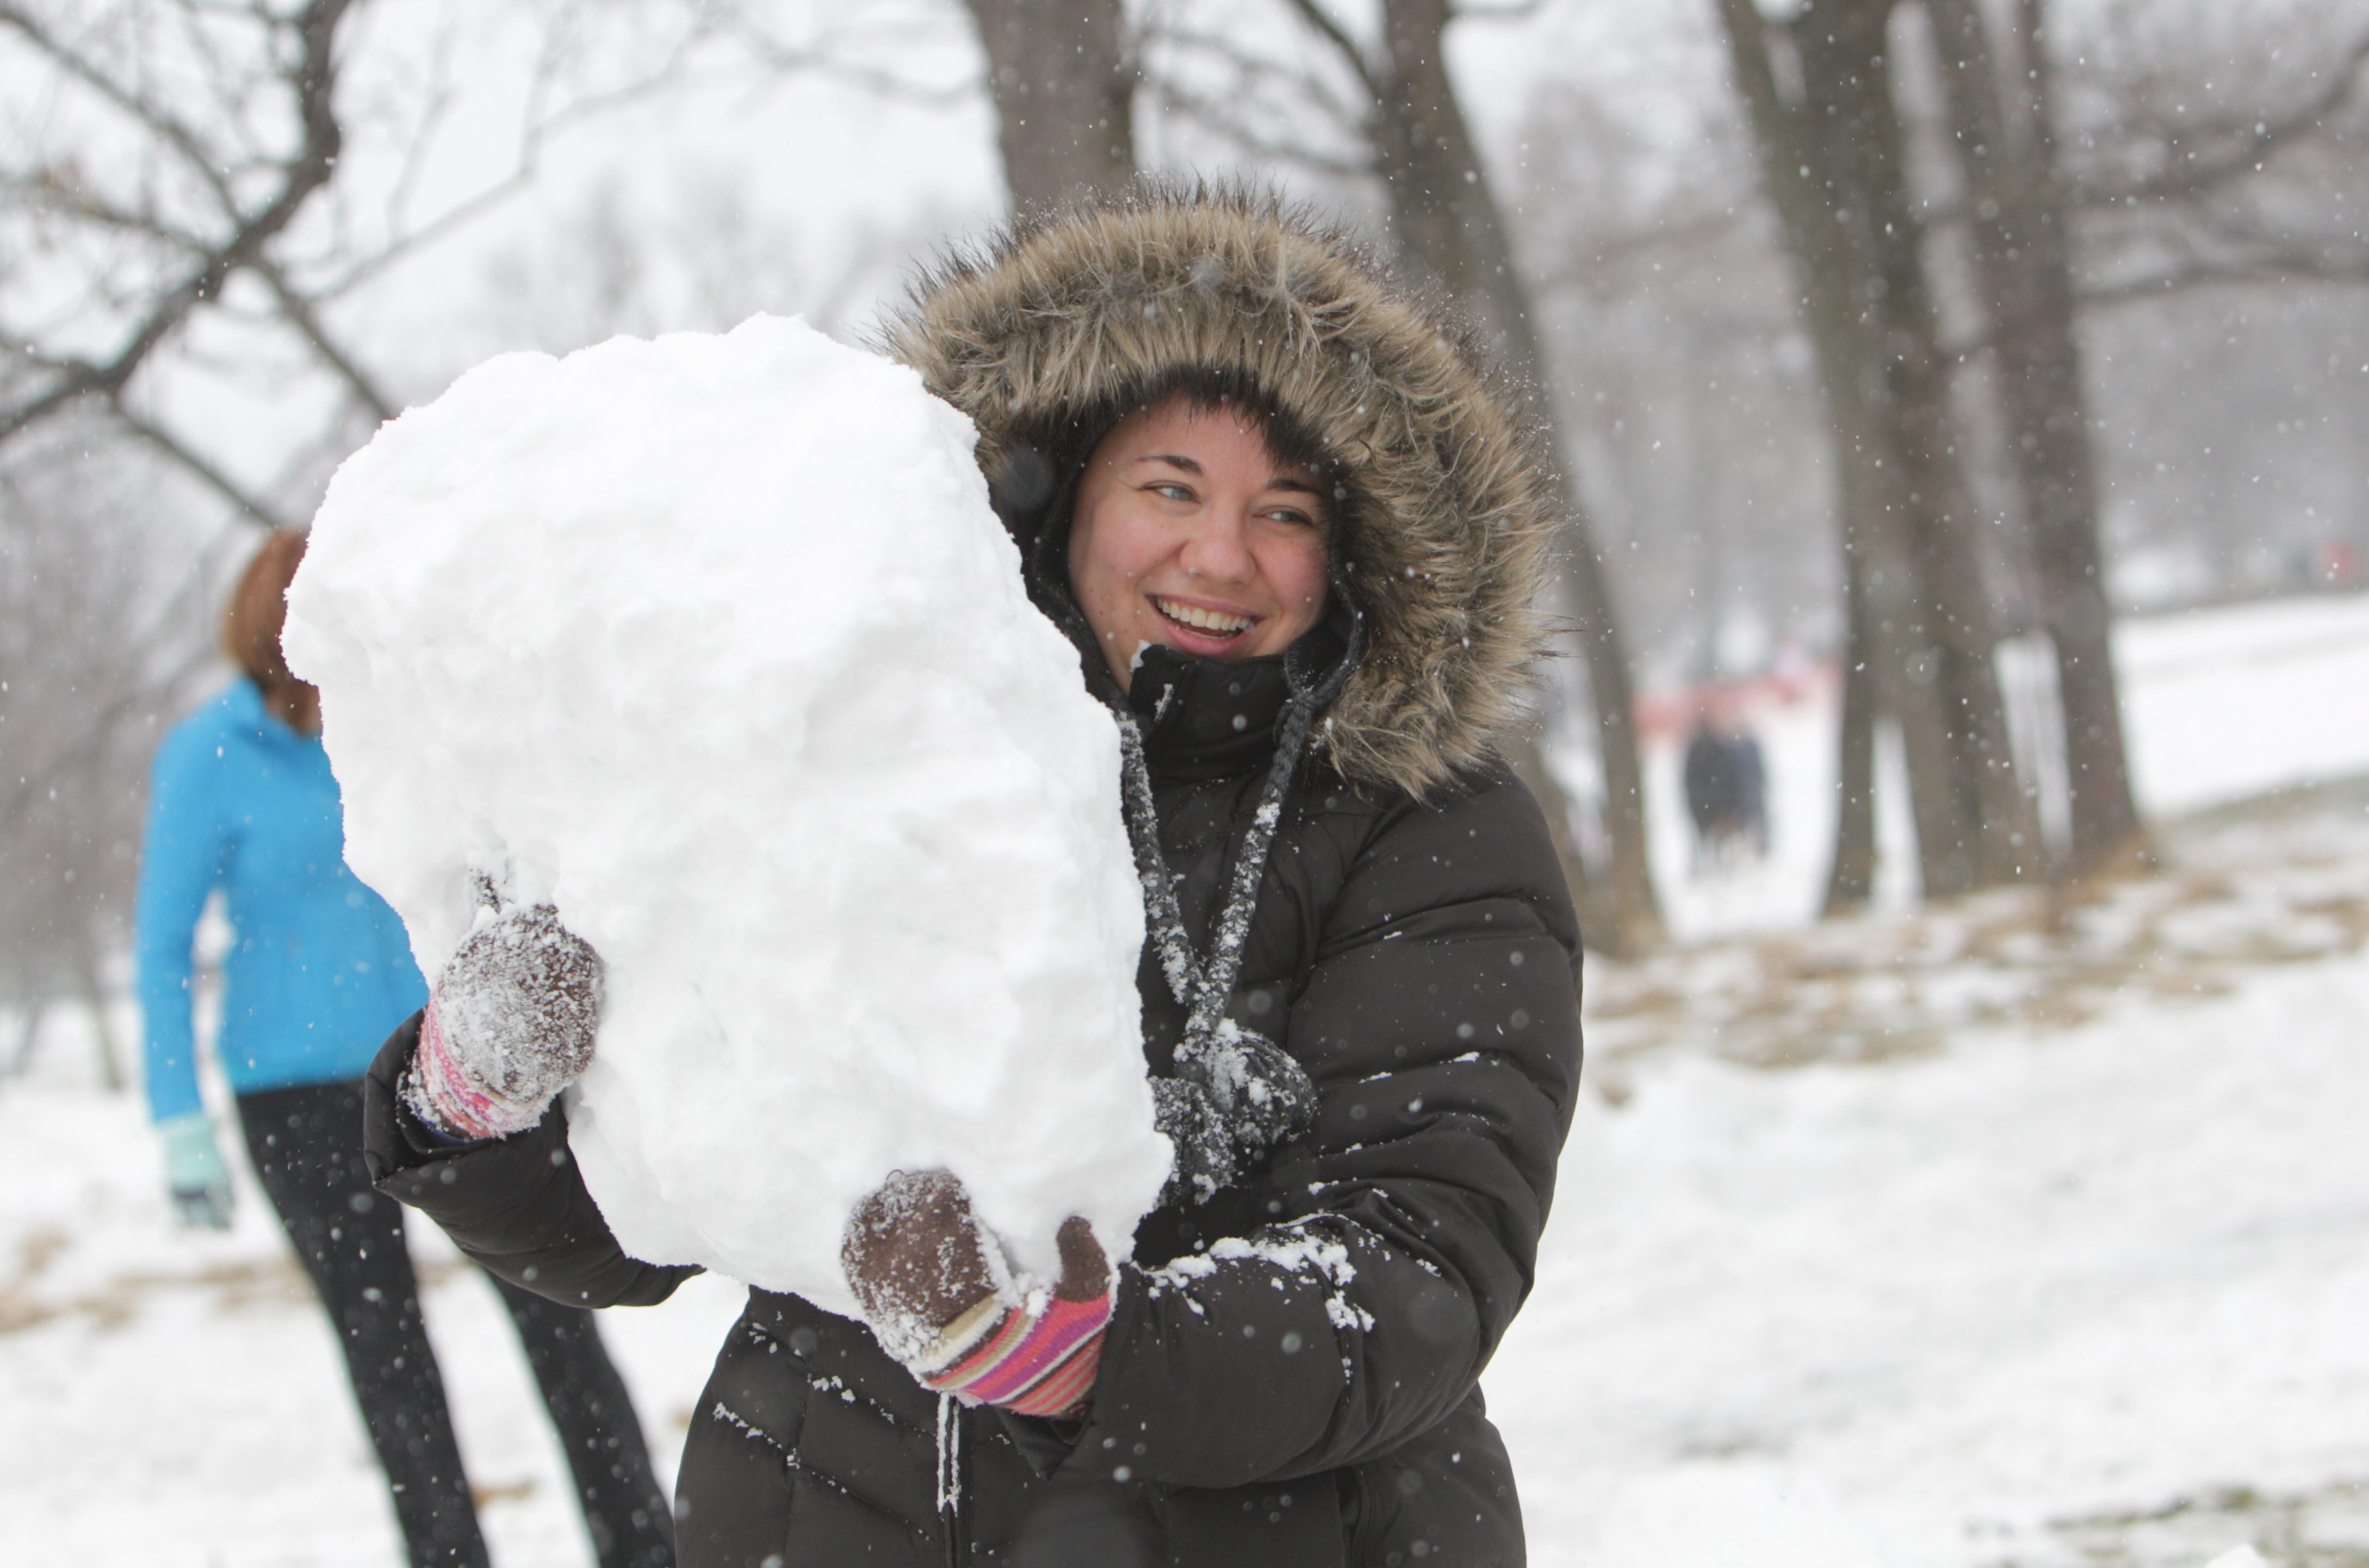 Flurrious, the winterfest at Delaware Park, escaped rain and had good weather for all of its snowy activities Saturday.Collen Flynn of Buffalo carries a giant snowball to help her family make a snowman during  BlueCross BlueShield of WNY's snowman contest.  (Sharon Cantillon/Buffalo News)